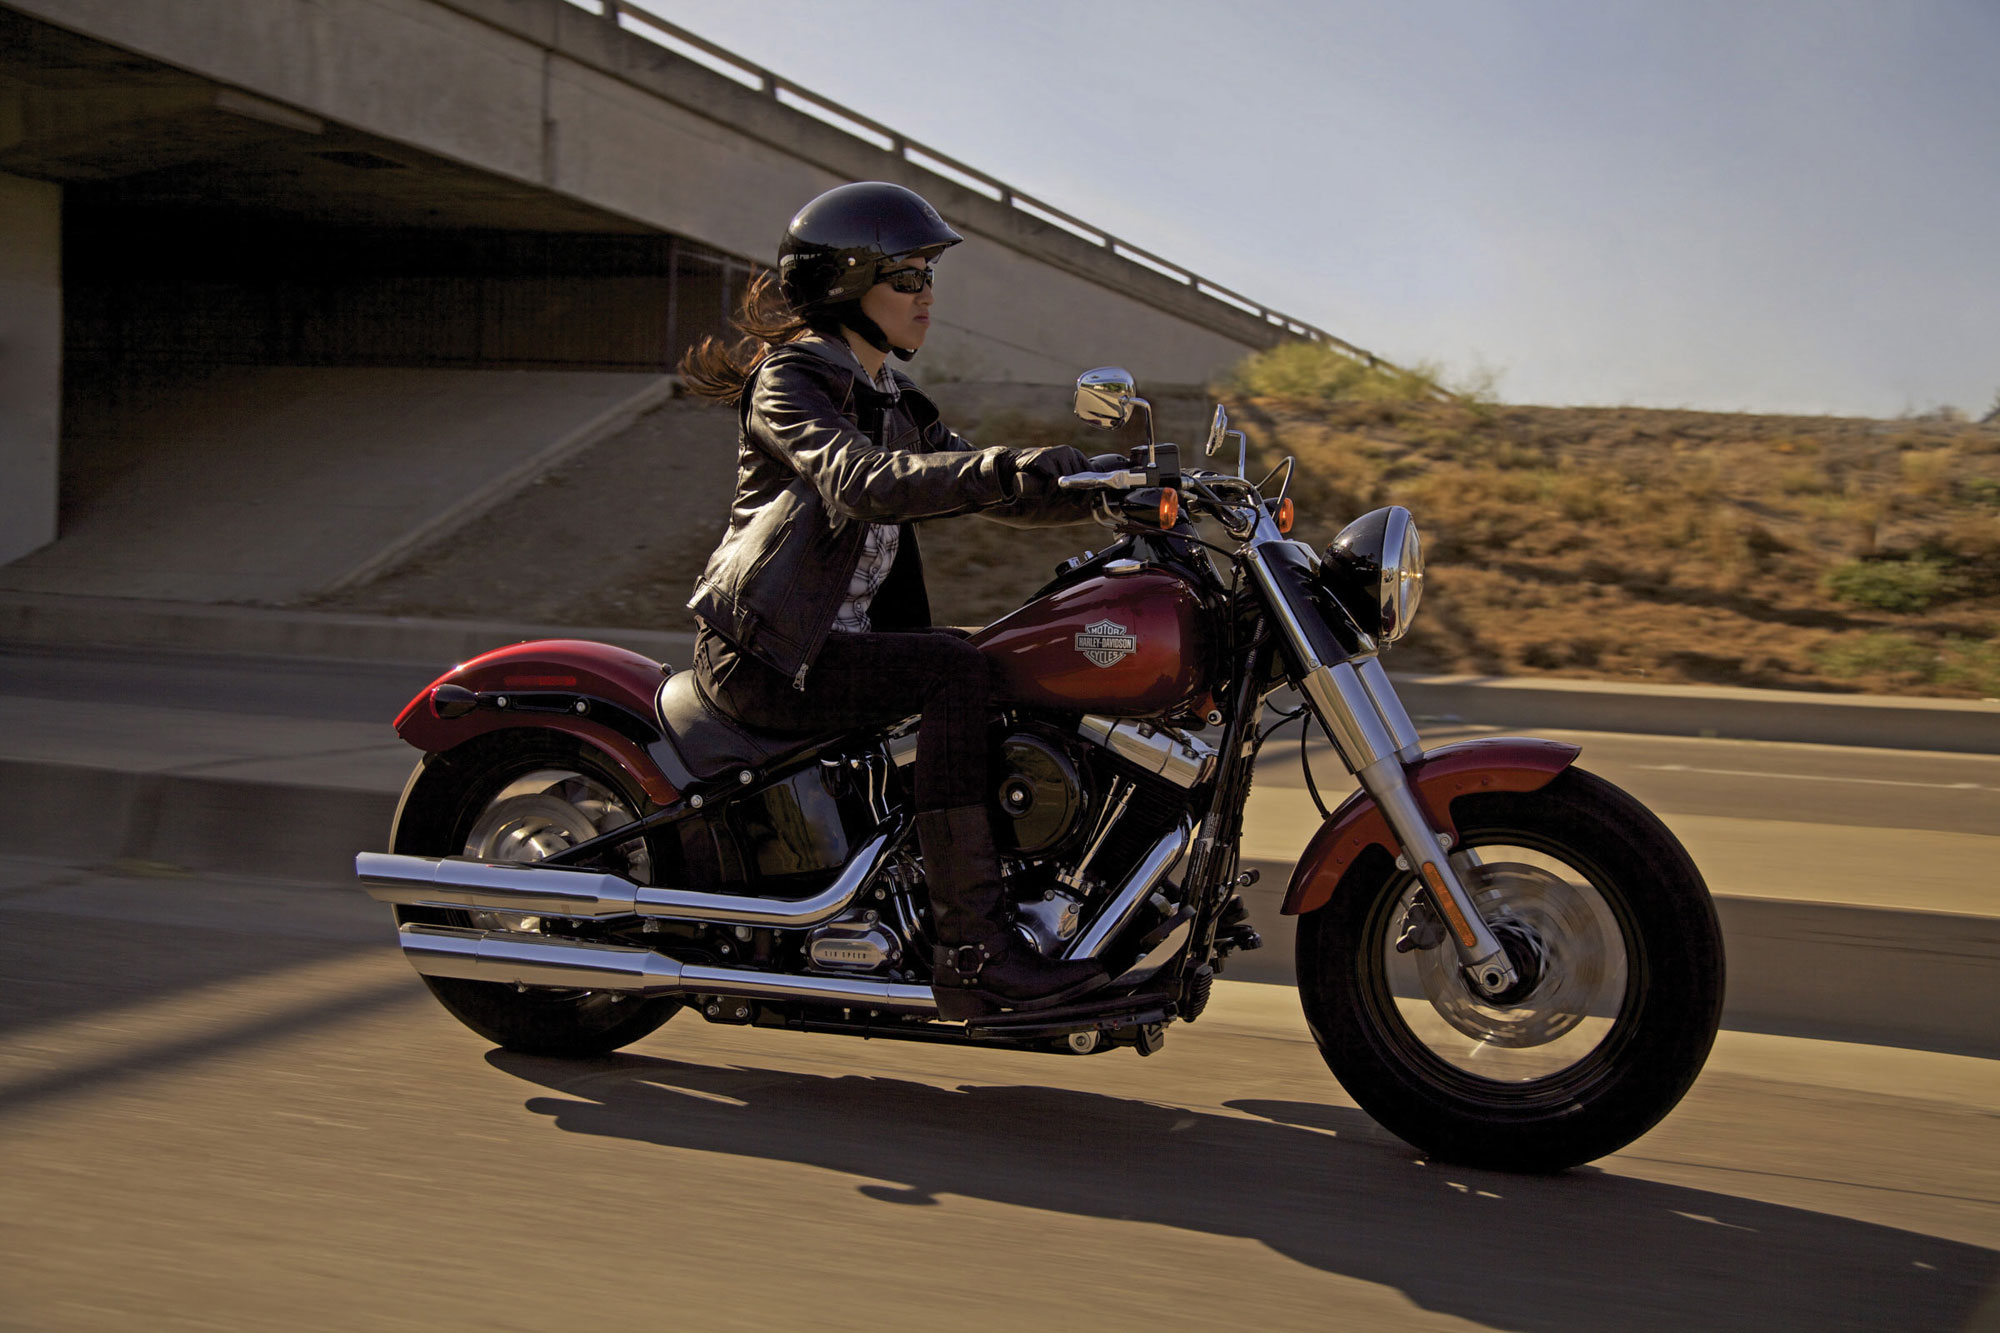 Back to 2013 harley davidson motorcycle model review page